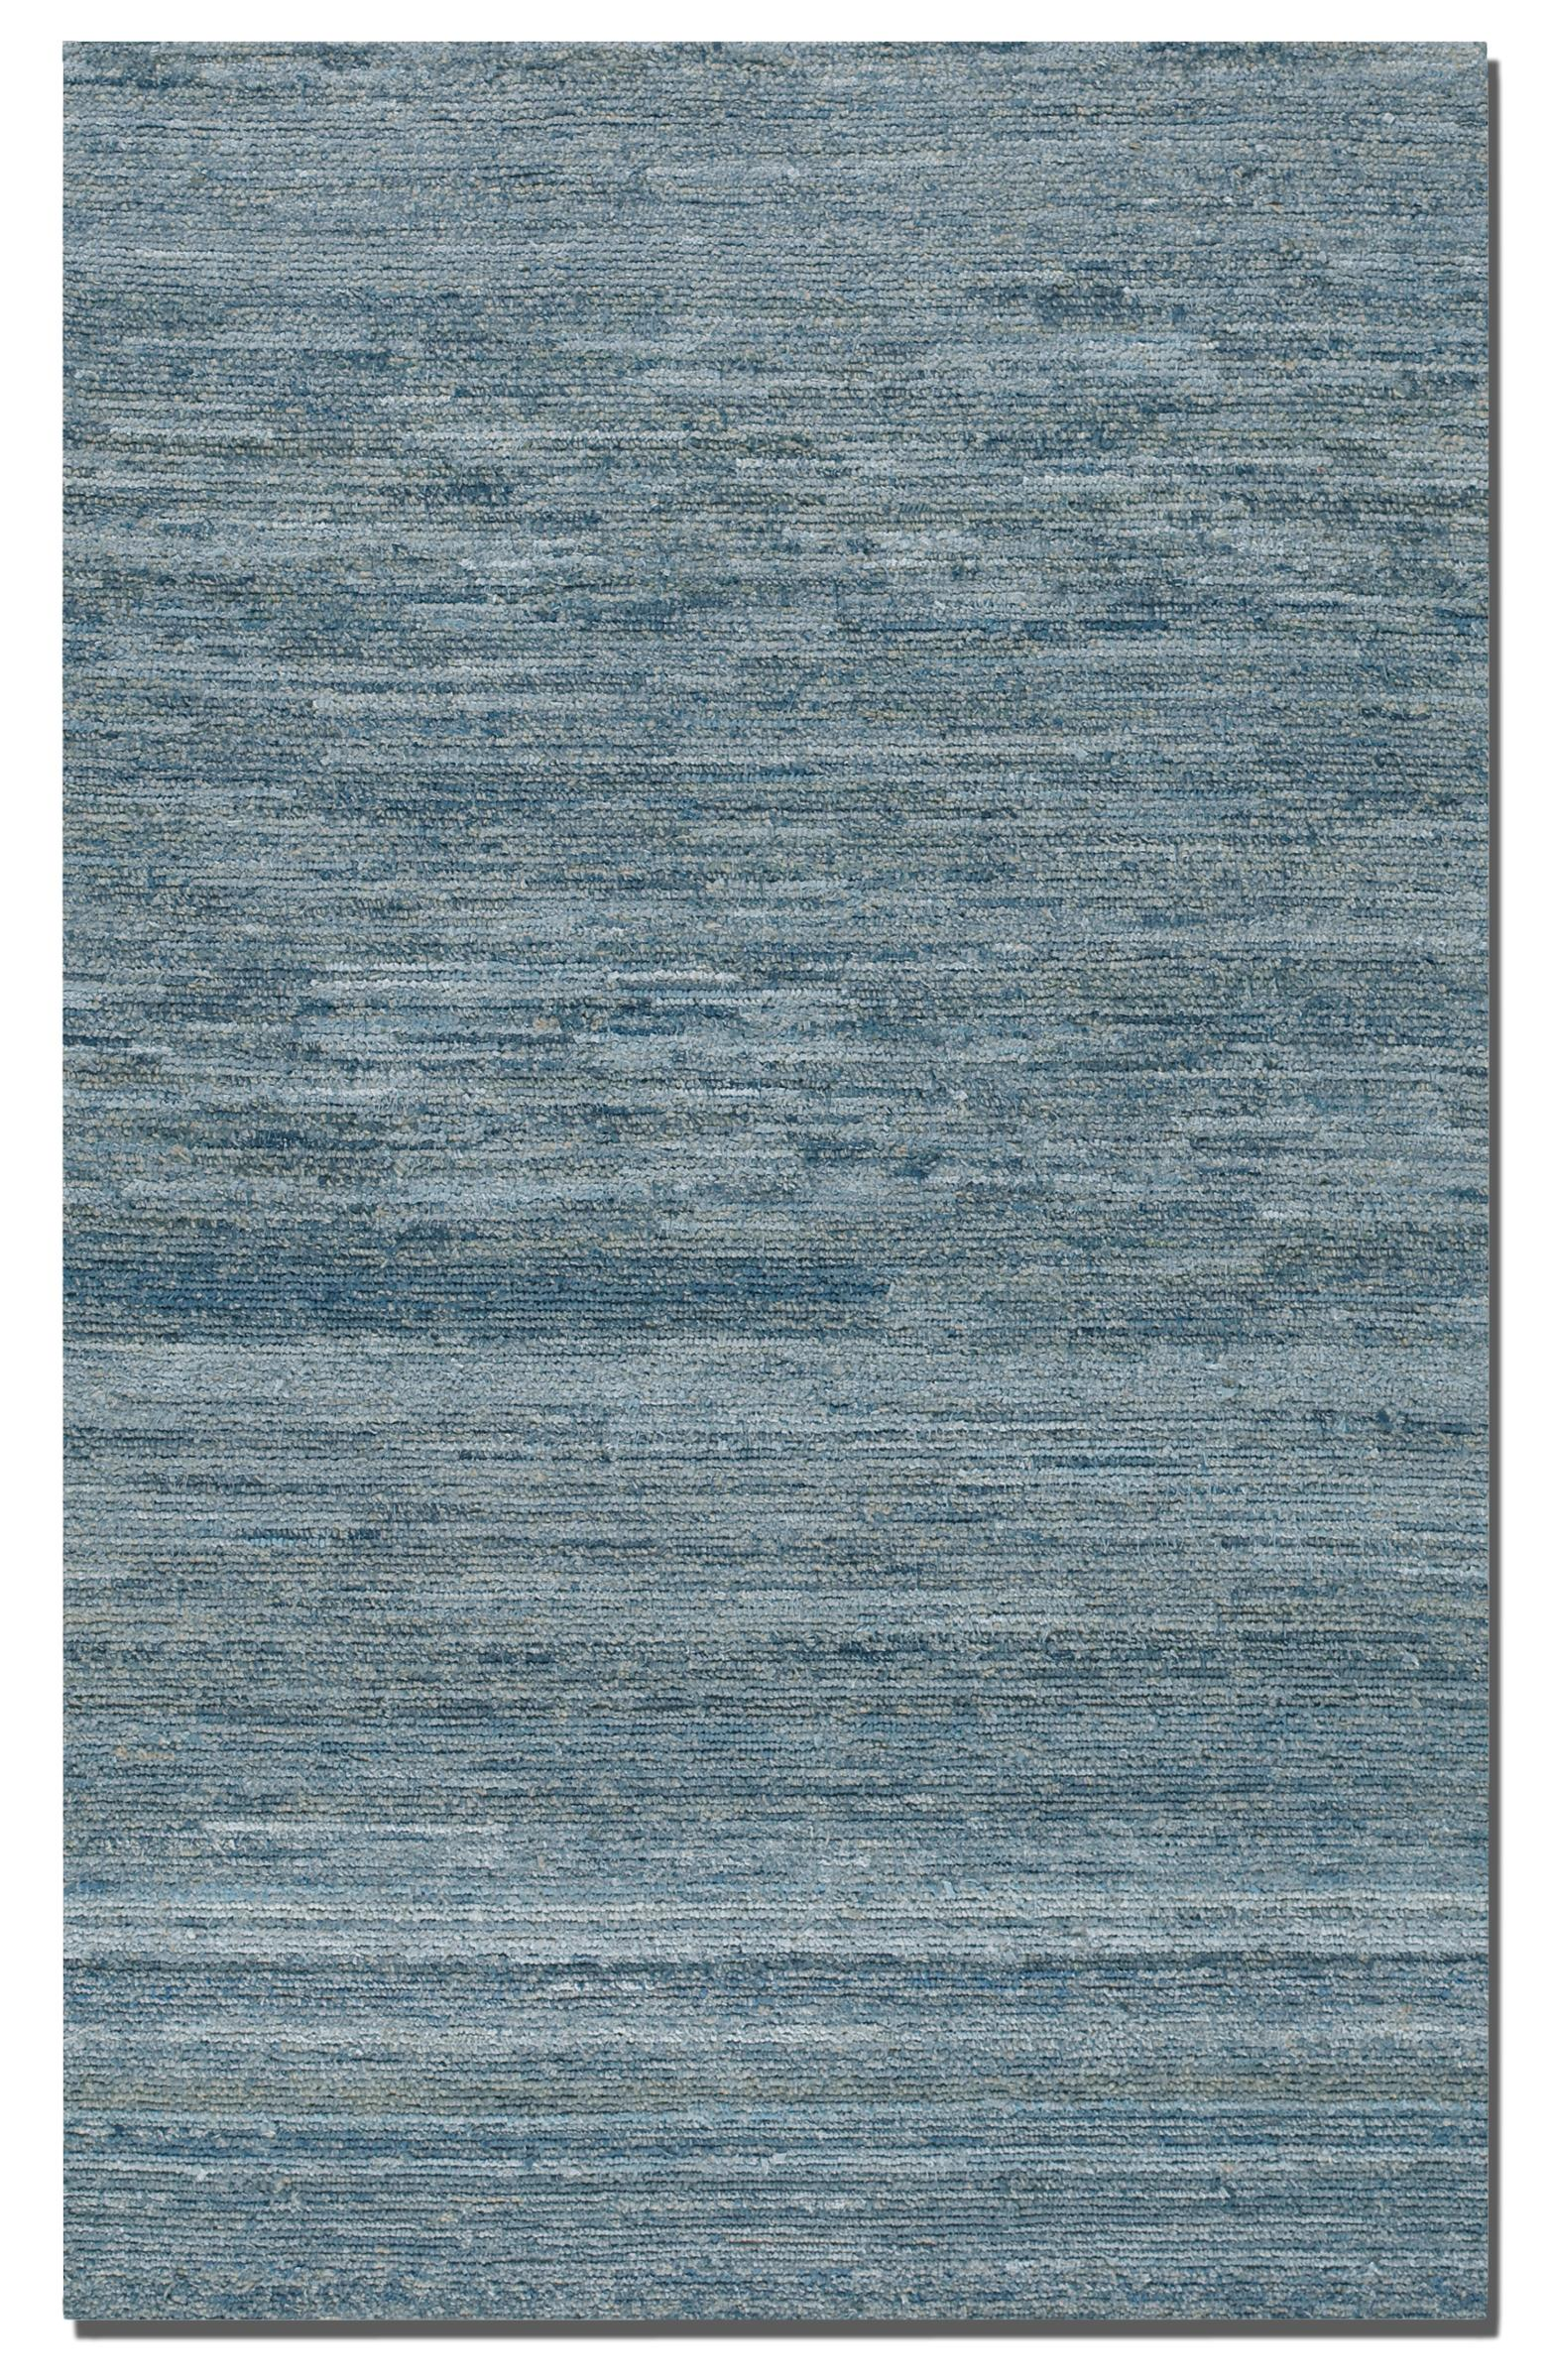 Uttermost Rugs Genoa 8 X 10 - Item Number: 73013-8